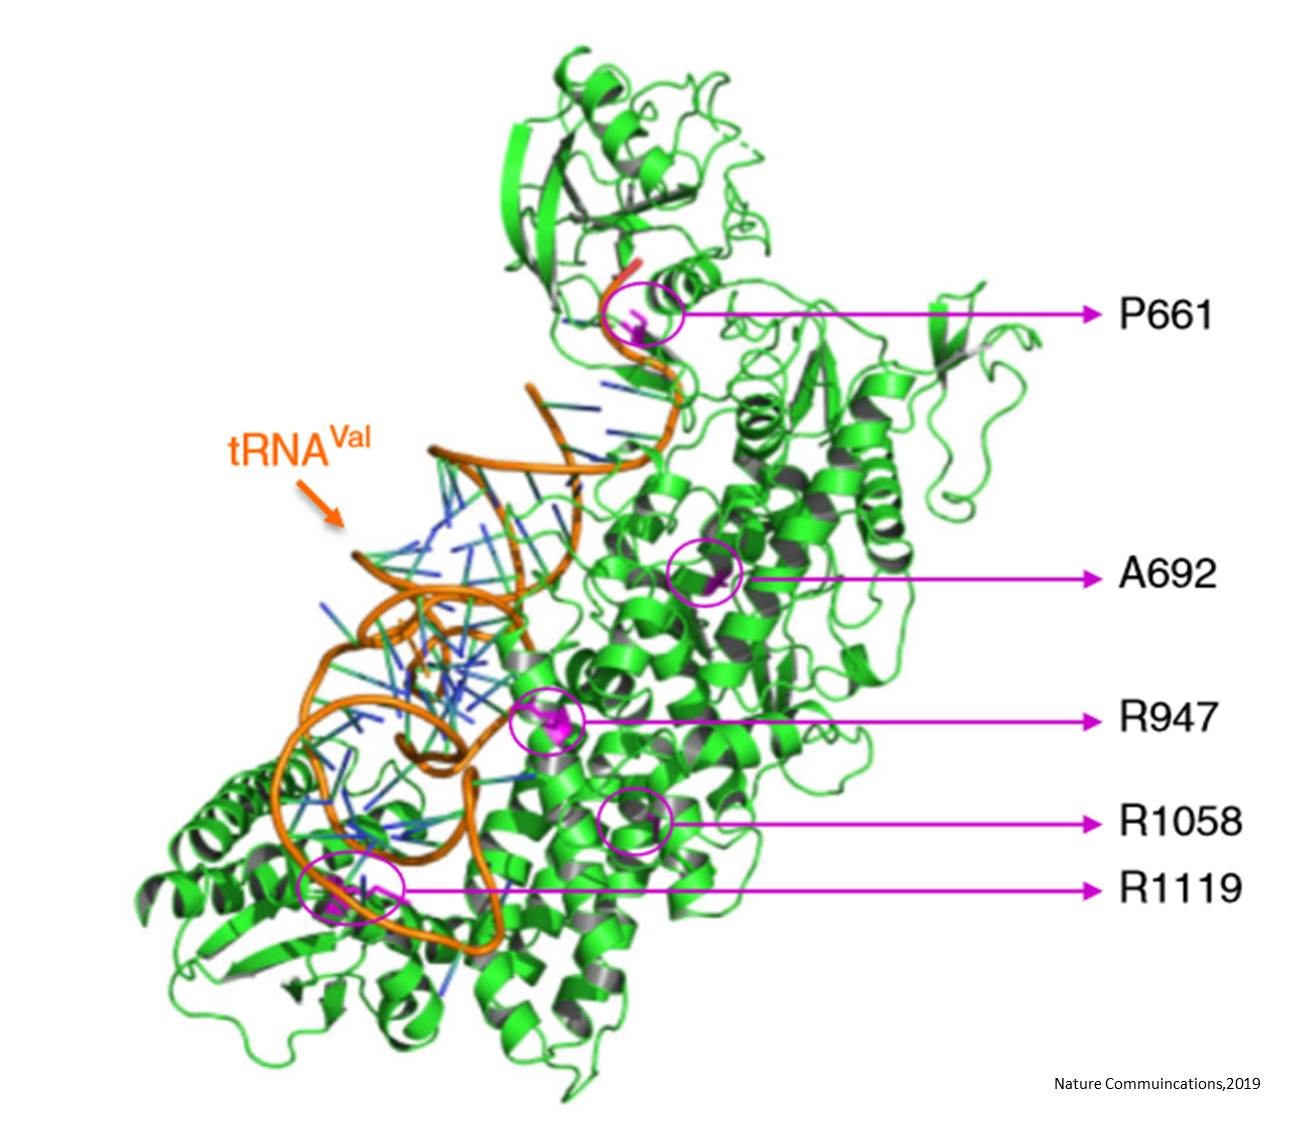 Valyl-tRNA synthetase gene VARS implicated in epileptic encephalopathy